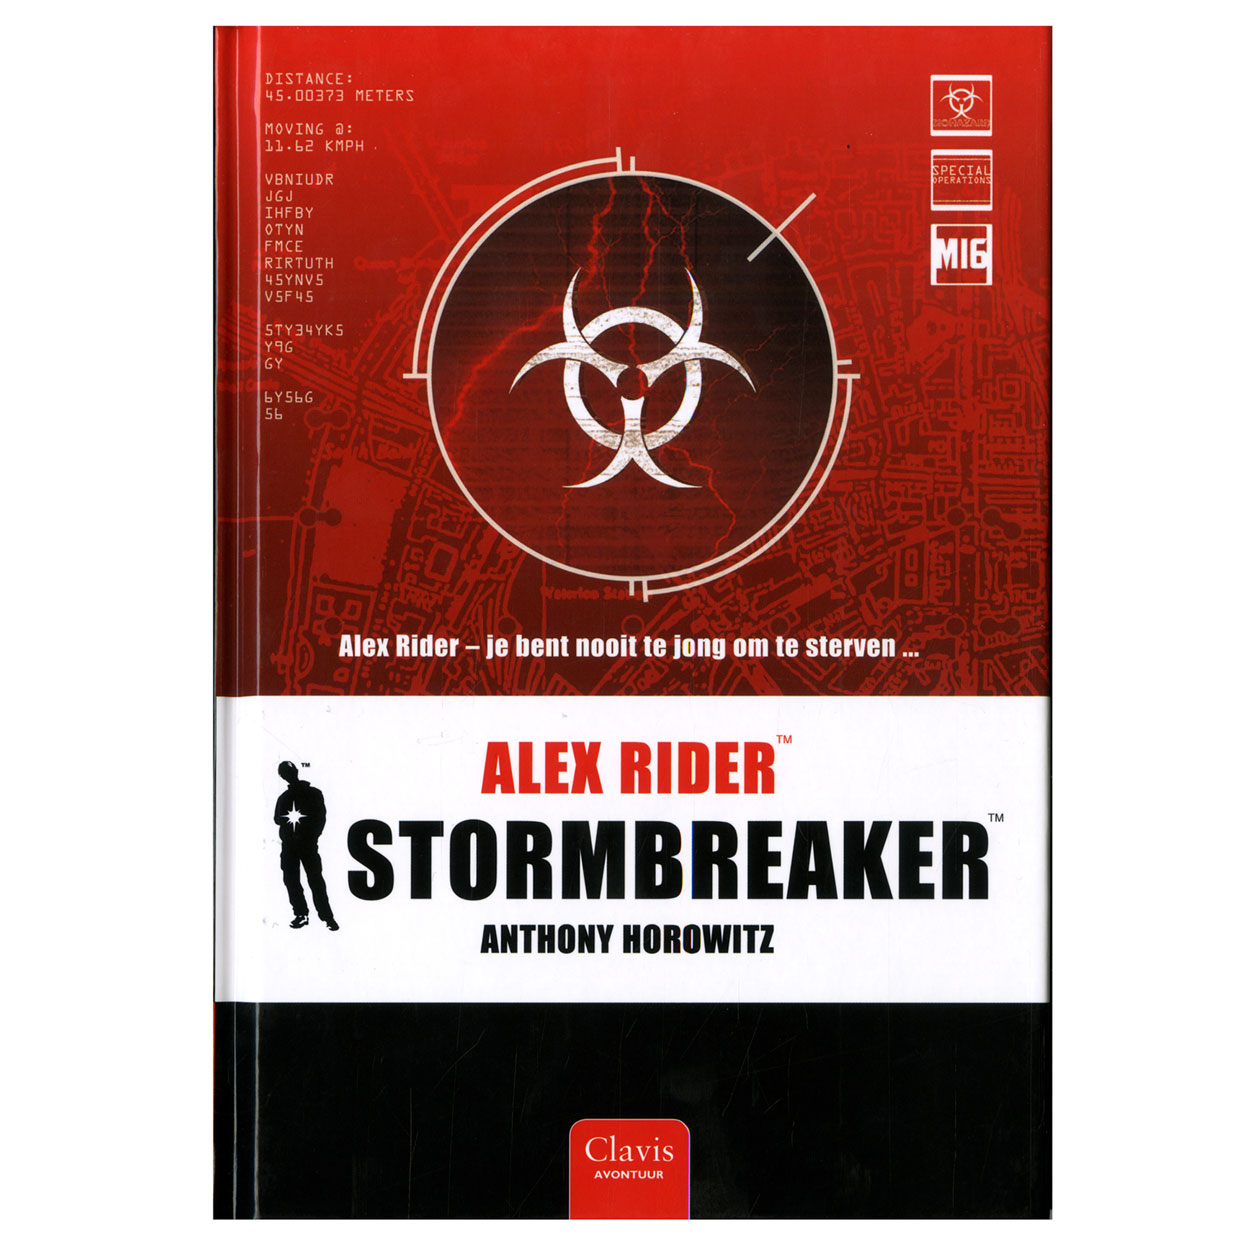 alex rider stormbreaker essay Alex's uncle, ian rider, really worked for mi6 he was a spy that was hired by mi6 to figure out the secret behind herod sayle and his stormbreaker computers that he was donating to every school in england.